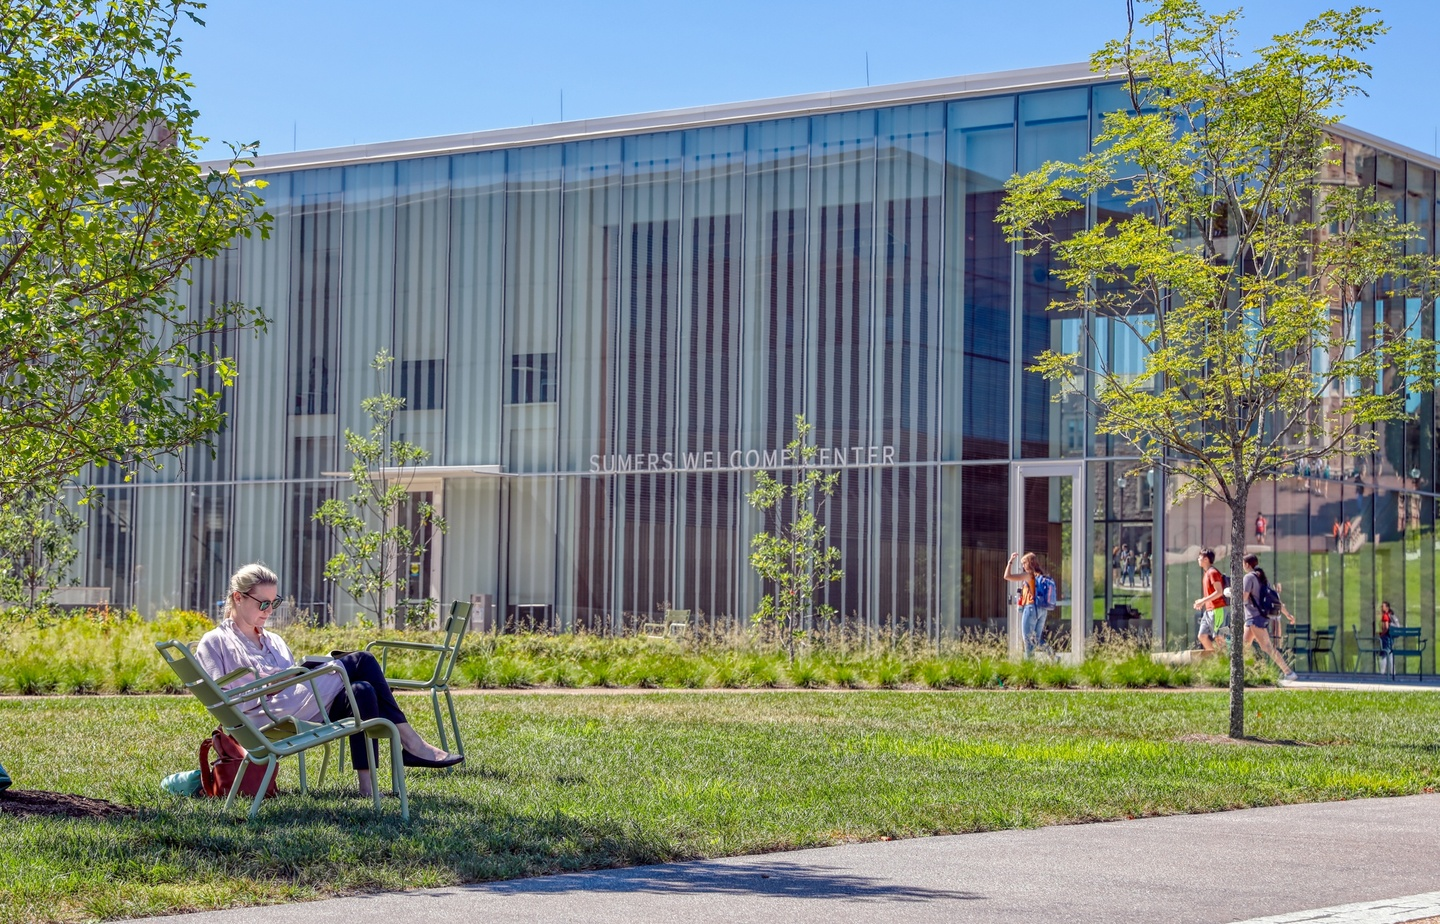 Person sits in a metal lawn chair in the shade of a little tree in front of a glass-walled building labeled Sumers Welcome Center.